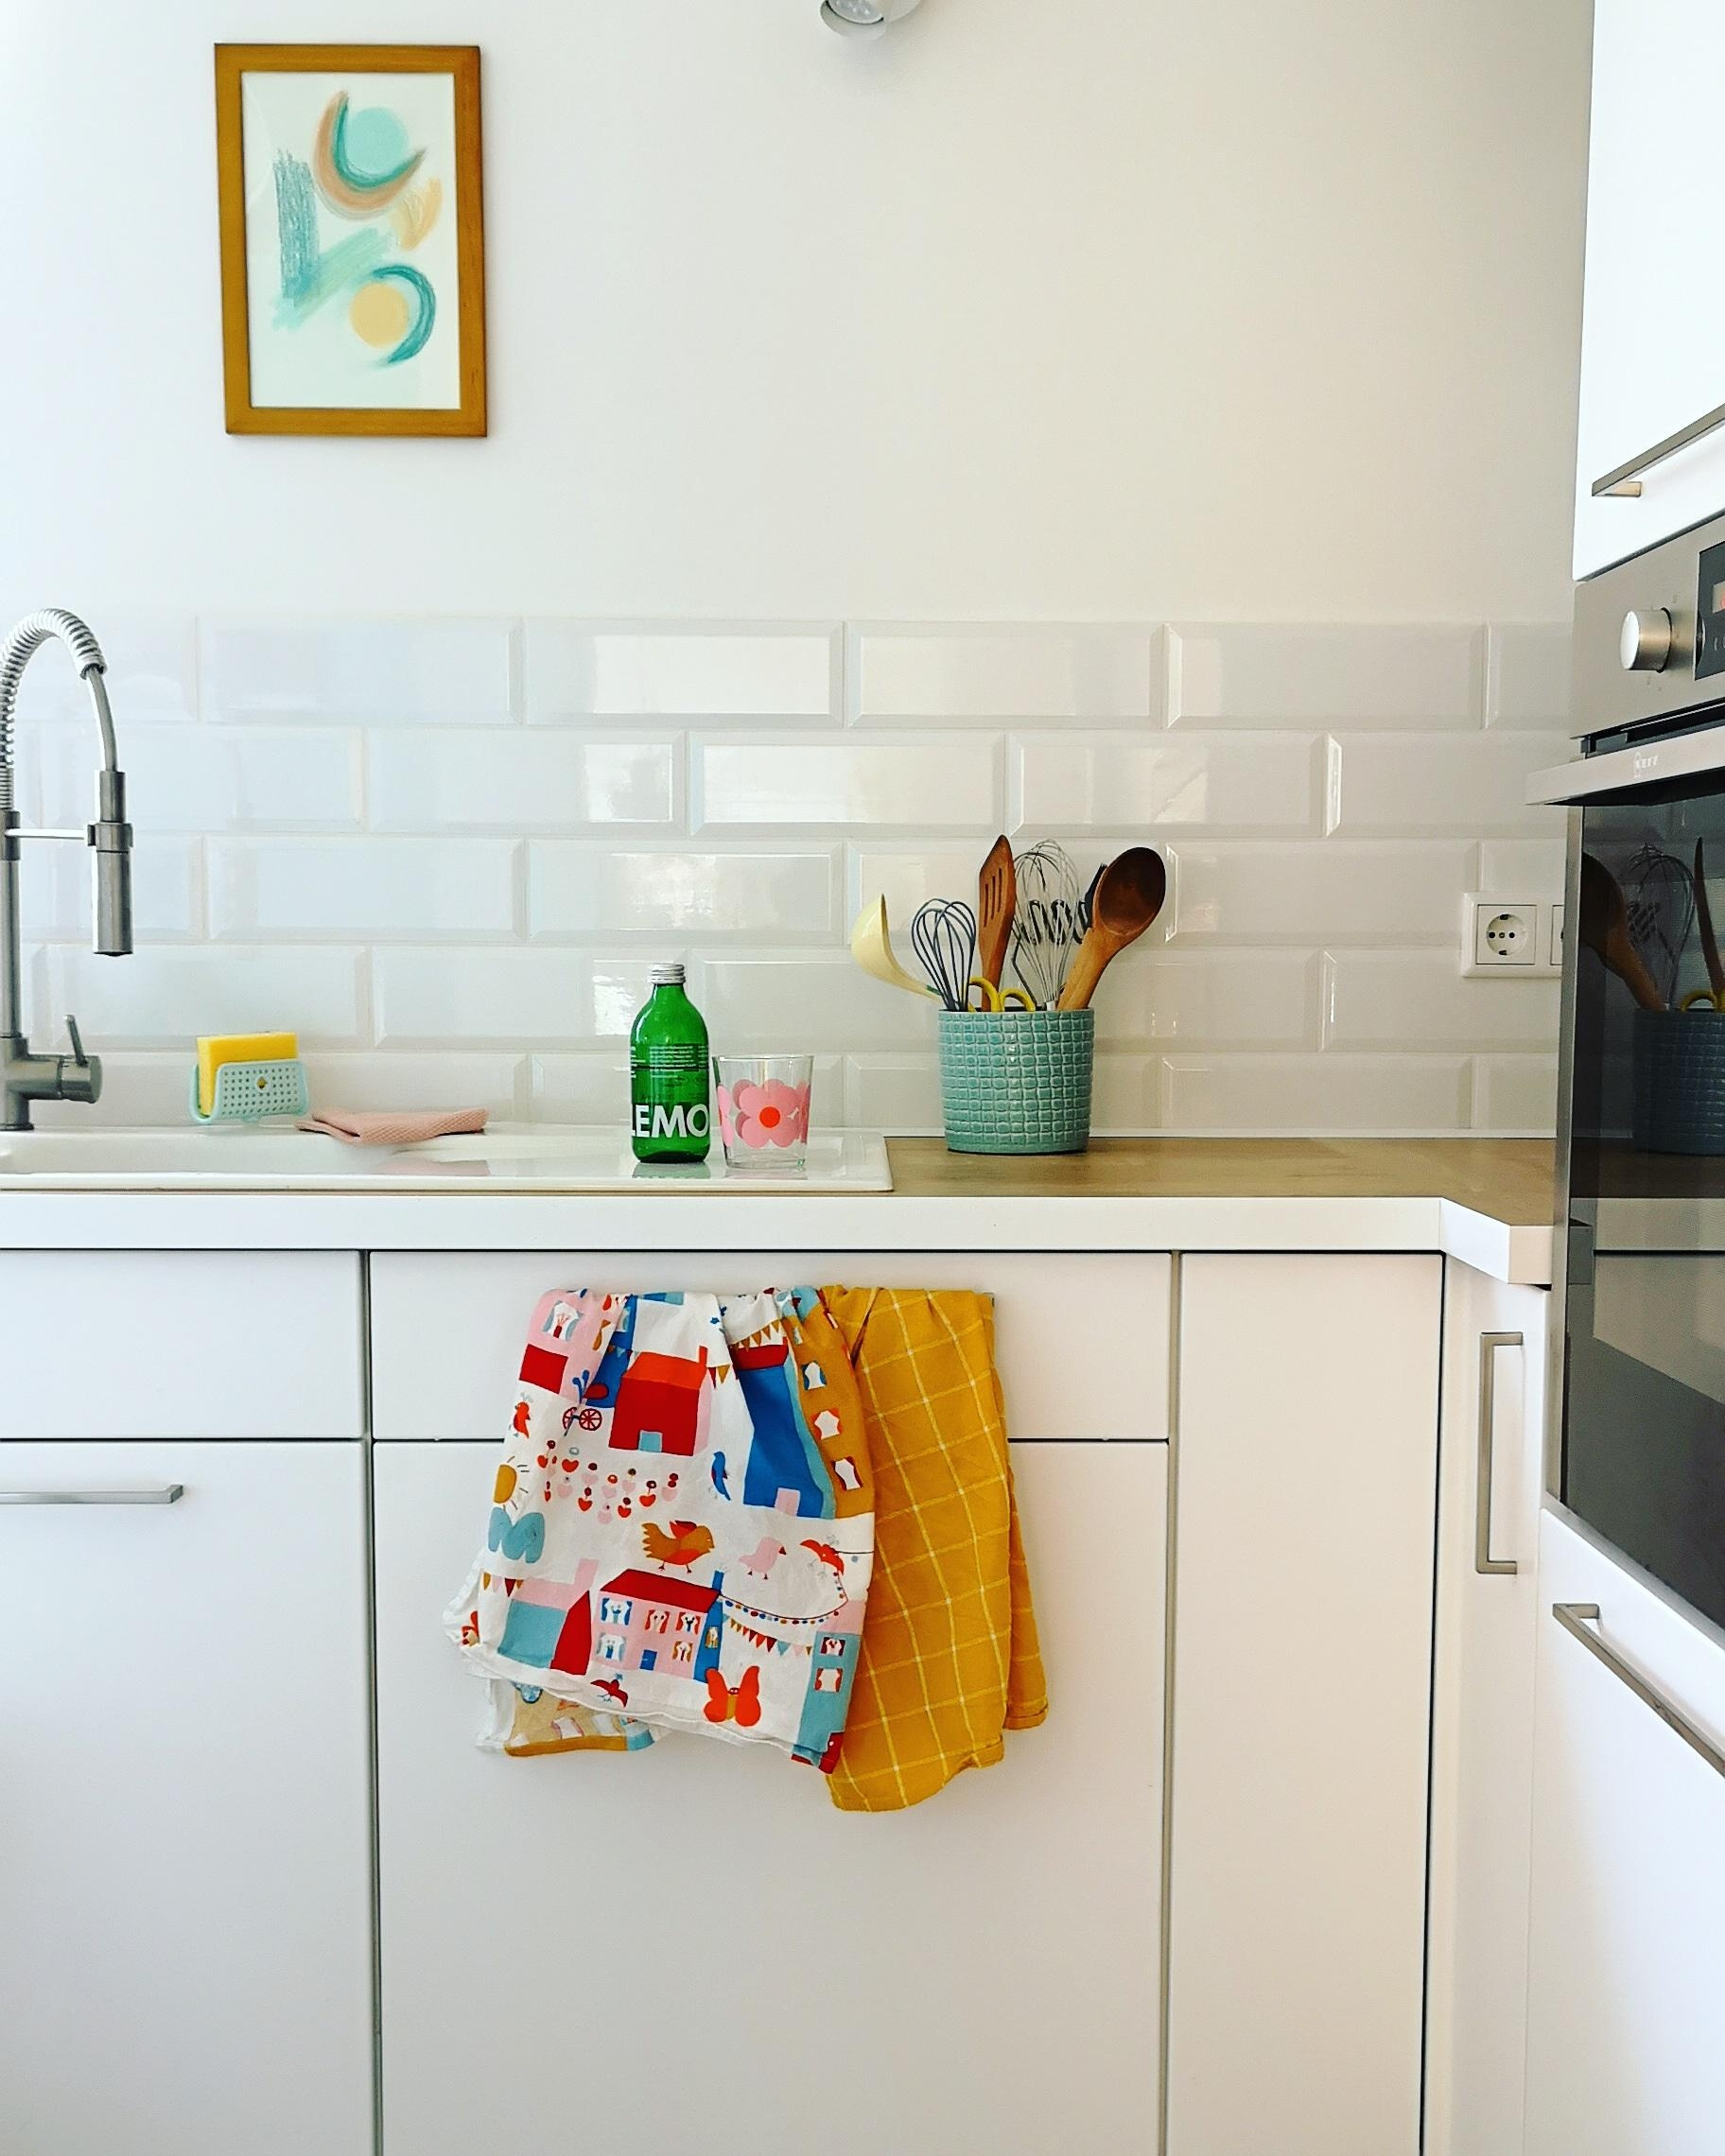 Hier wirds immer bunter☺️💛